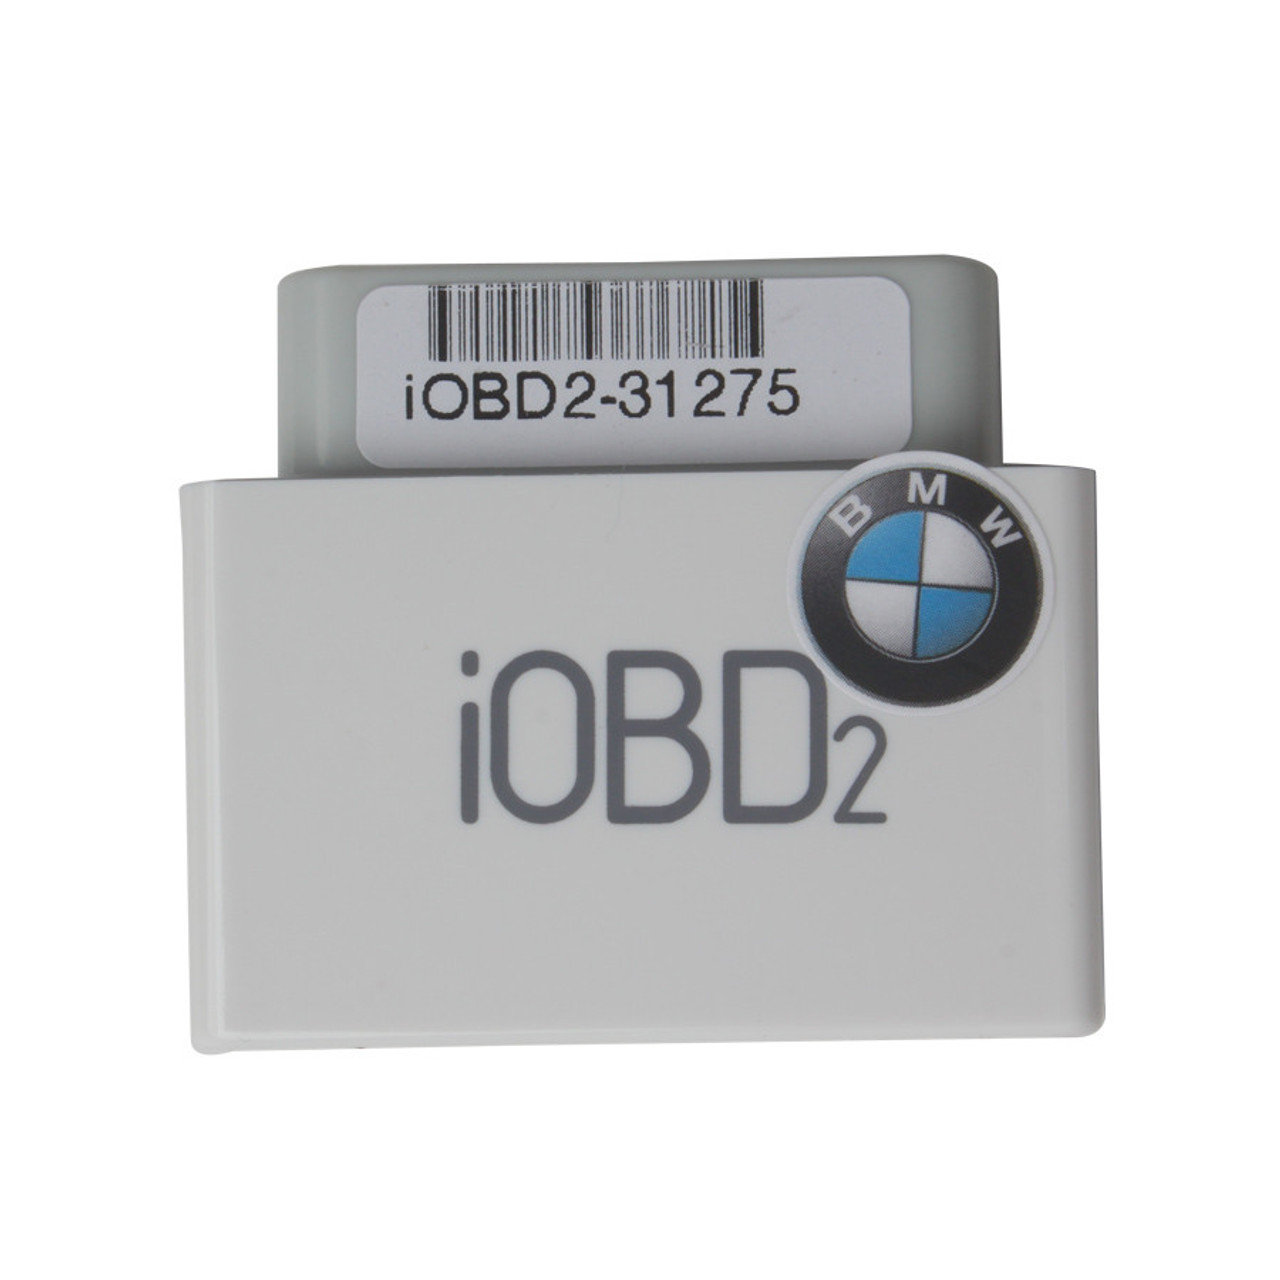 XTOOL iOBD2 BMW Pro Bluetooth OBD2 Scan Tool for Apple iOS and Android